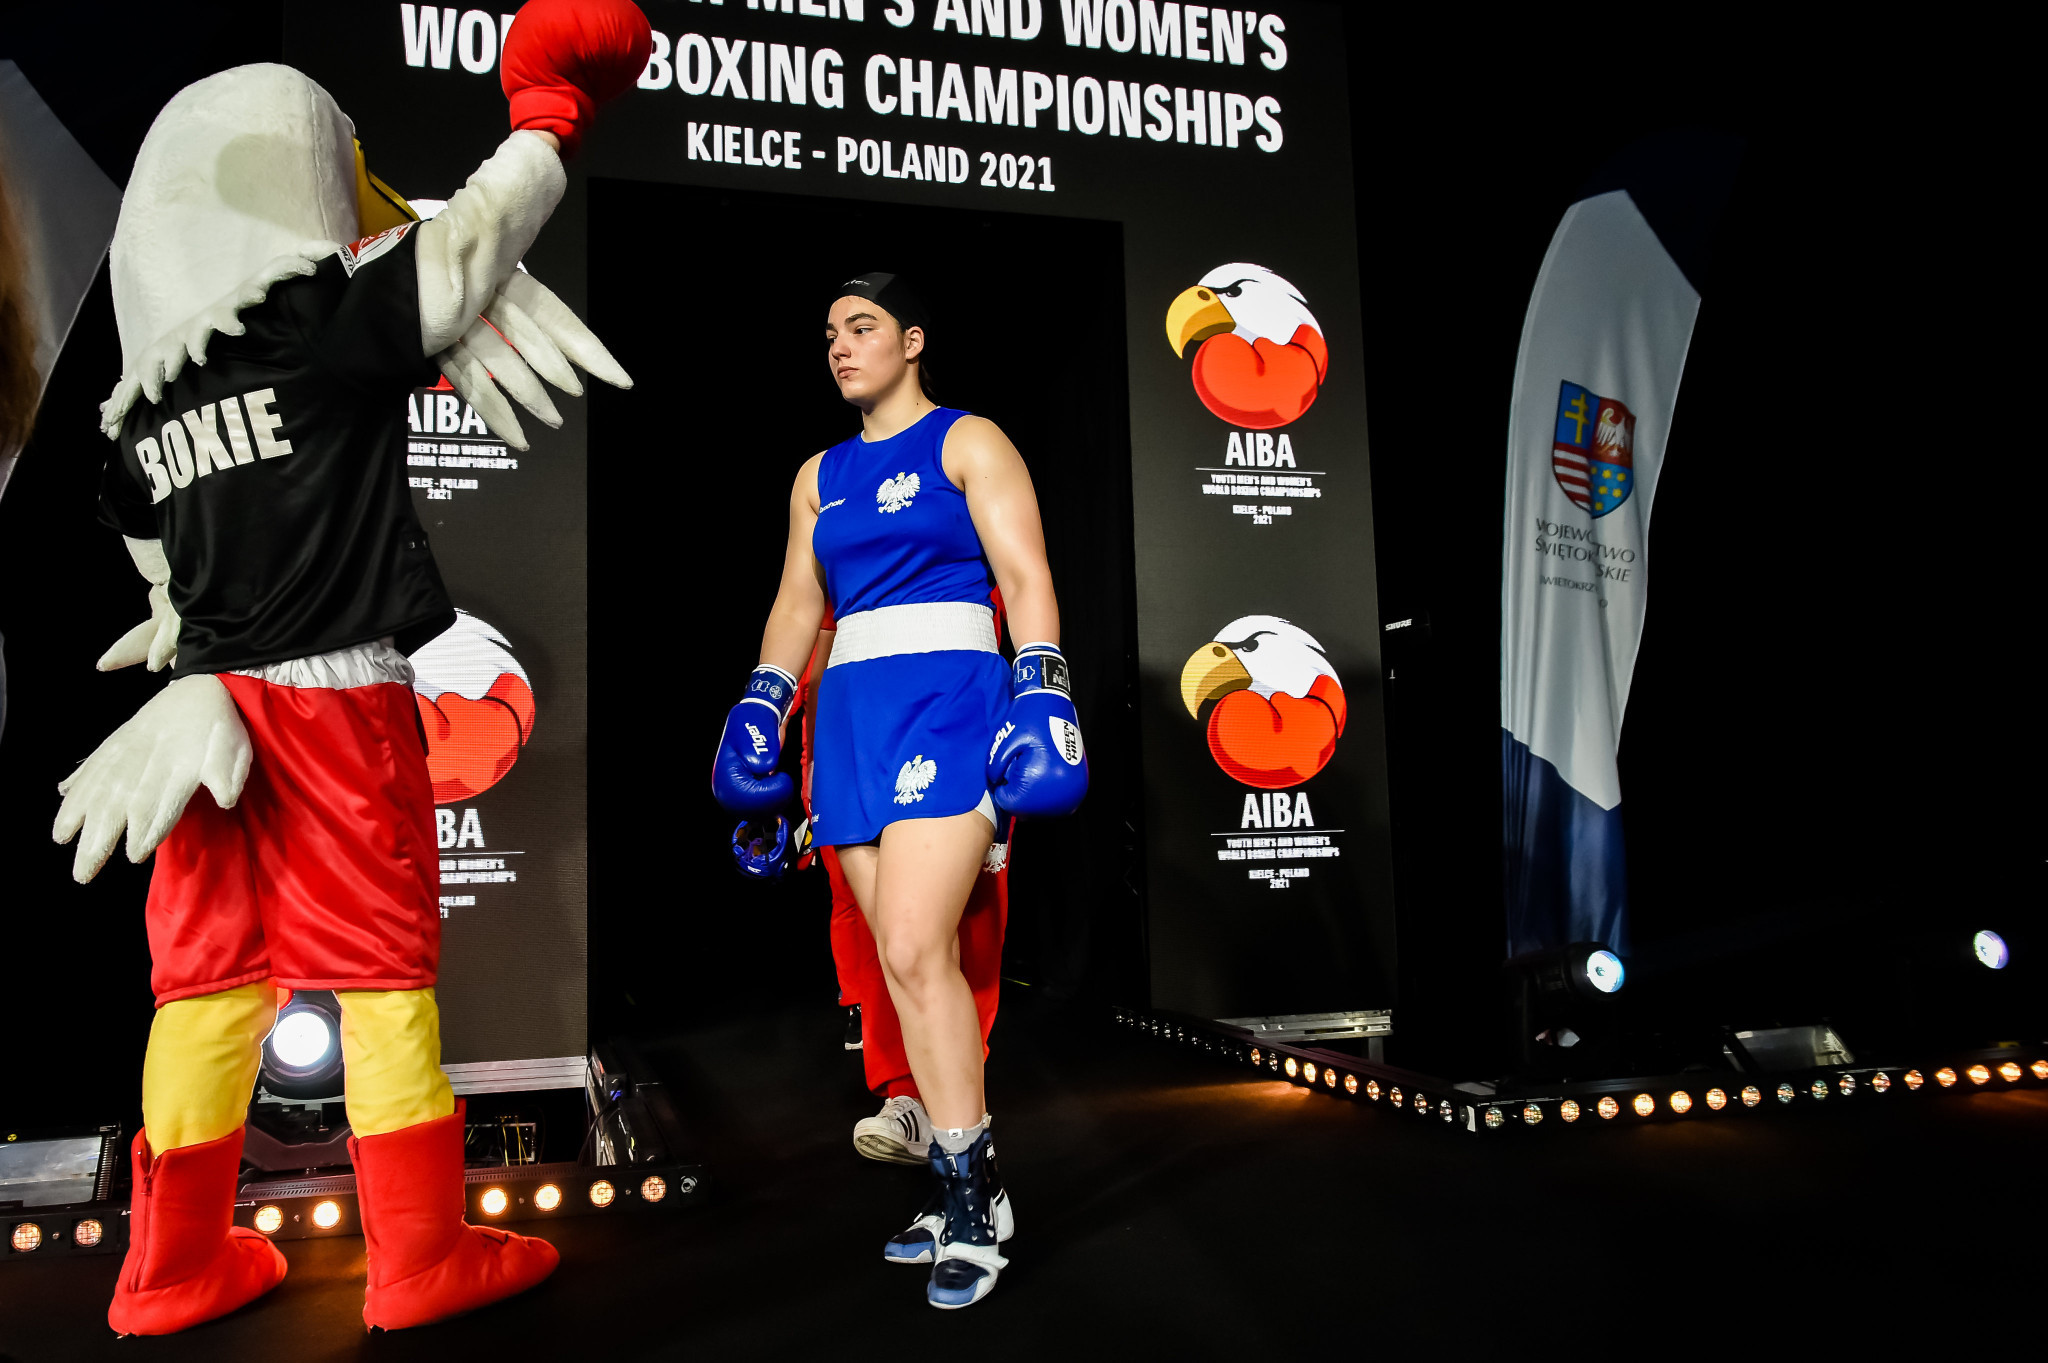 Bokie, the mascot for the Championships looks on as a fighter enters the ring ©AIBA